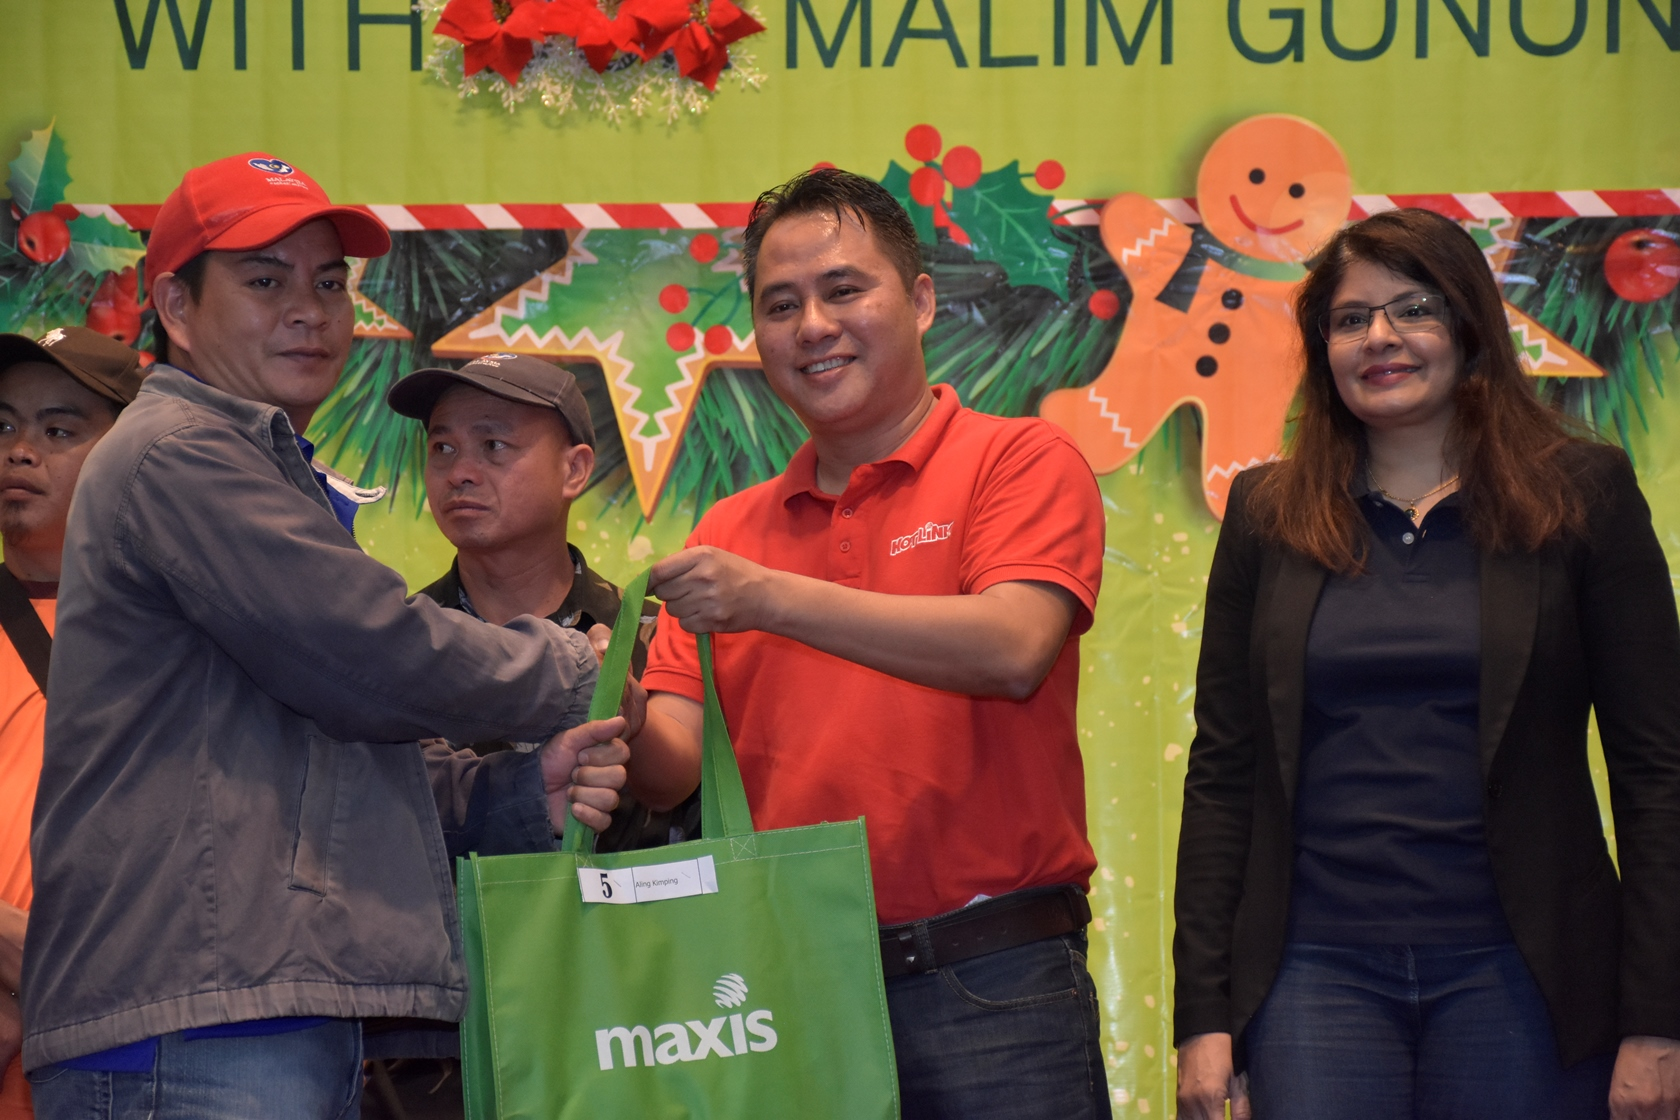 Maxis distributed school uniforms for the children of the mountain guides during the event. (From right - Mariam Bevi Batcha, Head of Corporate Affairs and Melvin Jeffrine Mojinun, Maxis Head of Sabah Region)